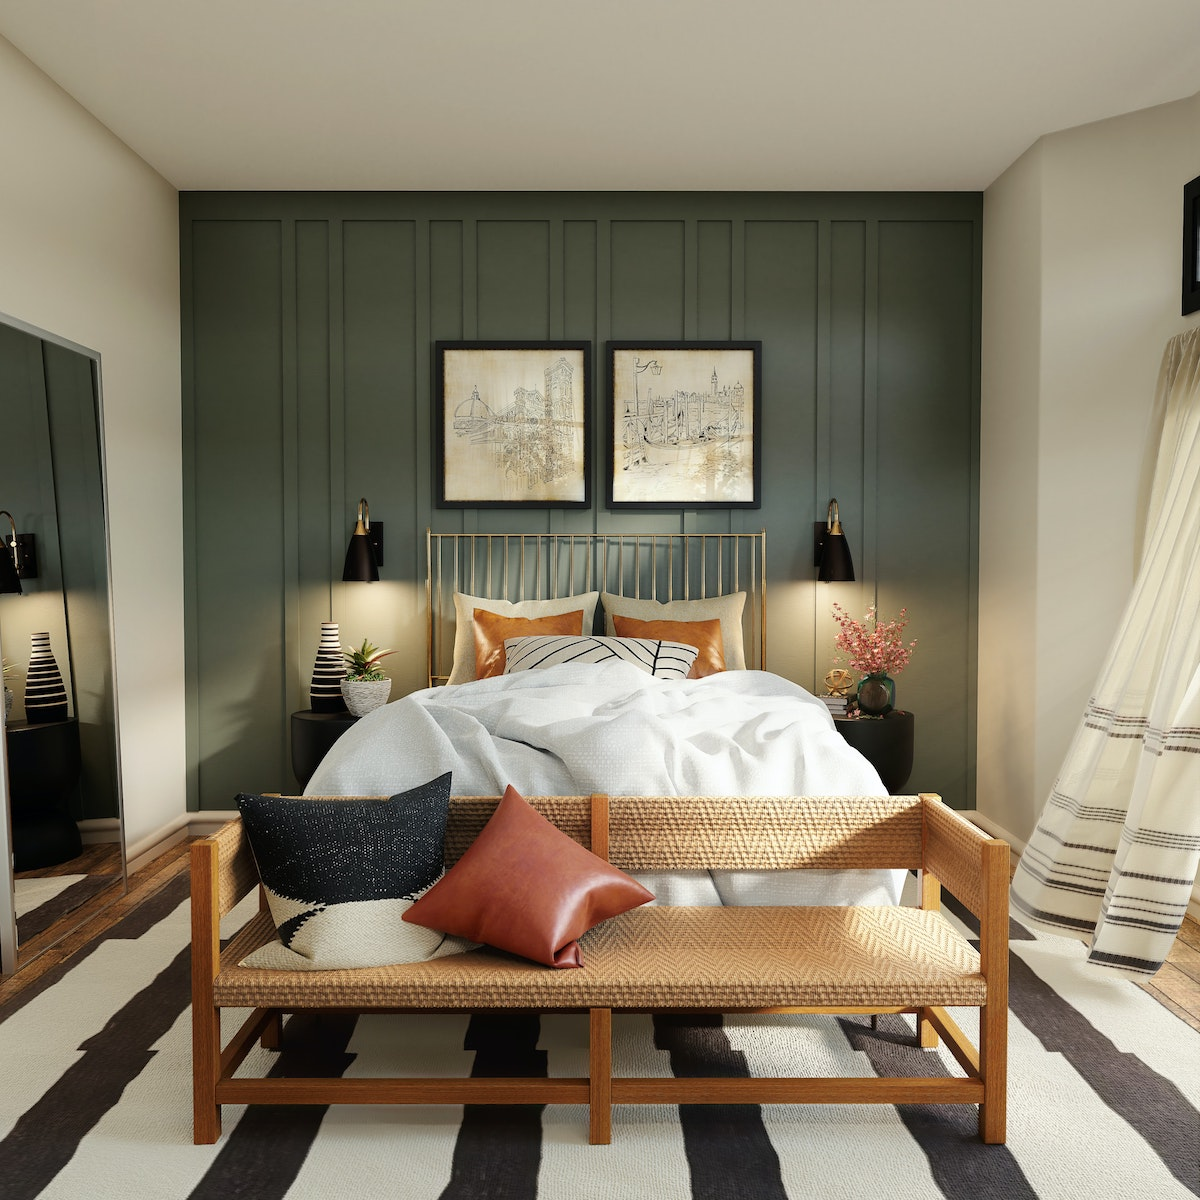 Bed with Gold Frame